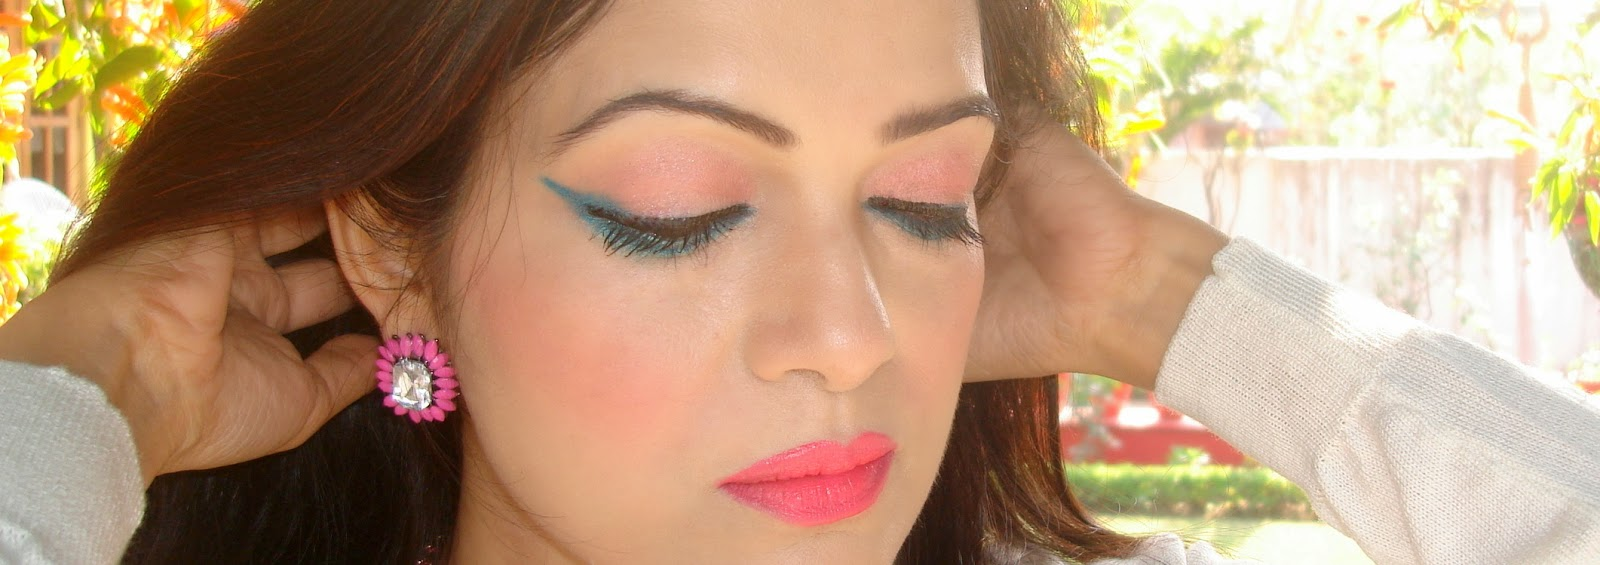 Valentines Day look using Maybelline Instaglam gift kit